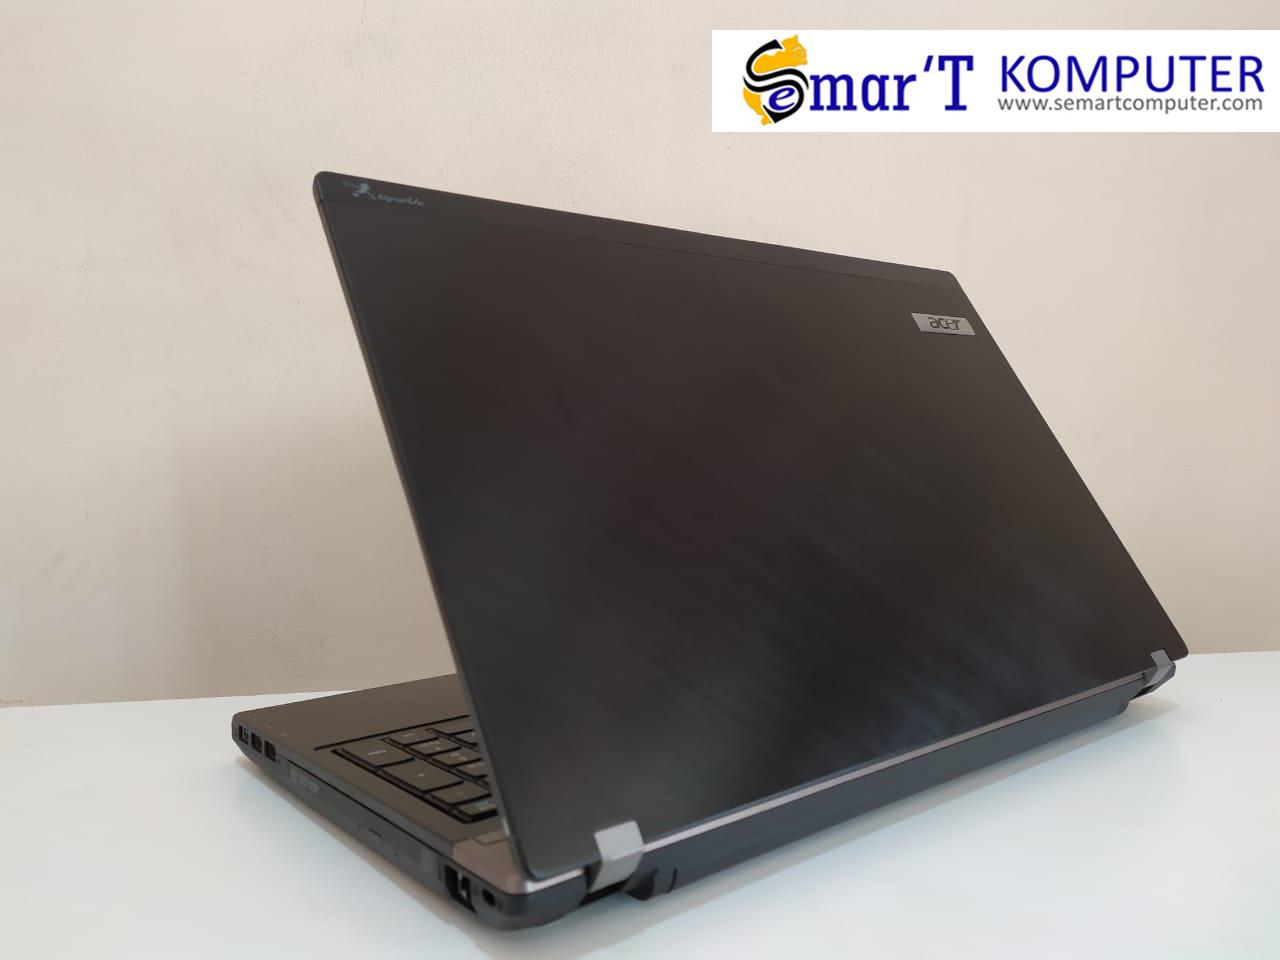 https://www.lazada.co.id/products/acer-travelmate-tm8573-core-i5-i503140302-s642420630.html